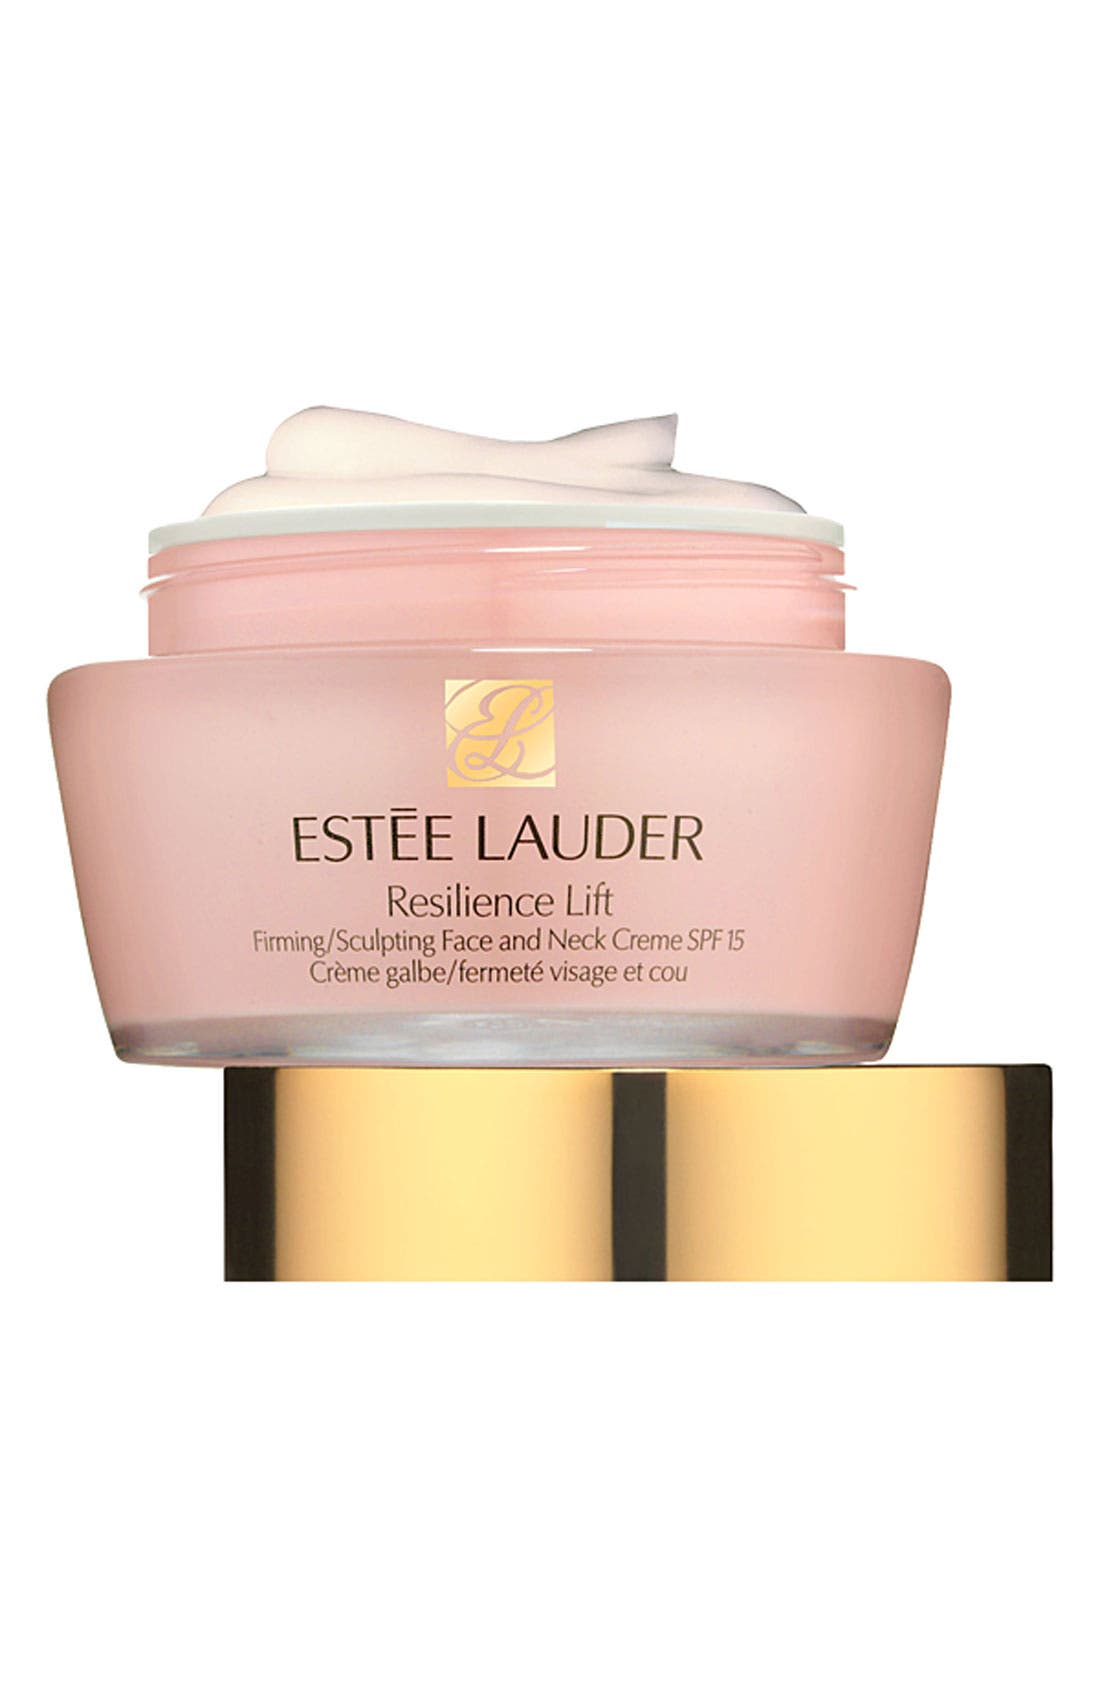 Estée Lauder Resilience Lift Firming/Sculpting Face and Neck Creme SPF 15 for Dry Skin